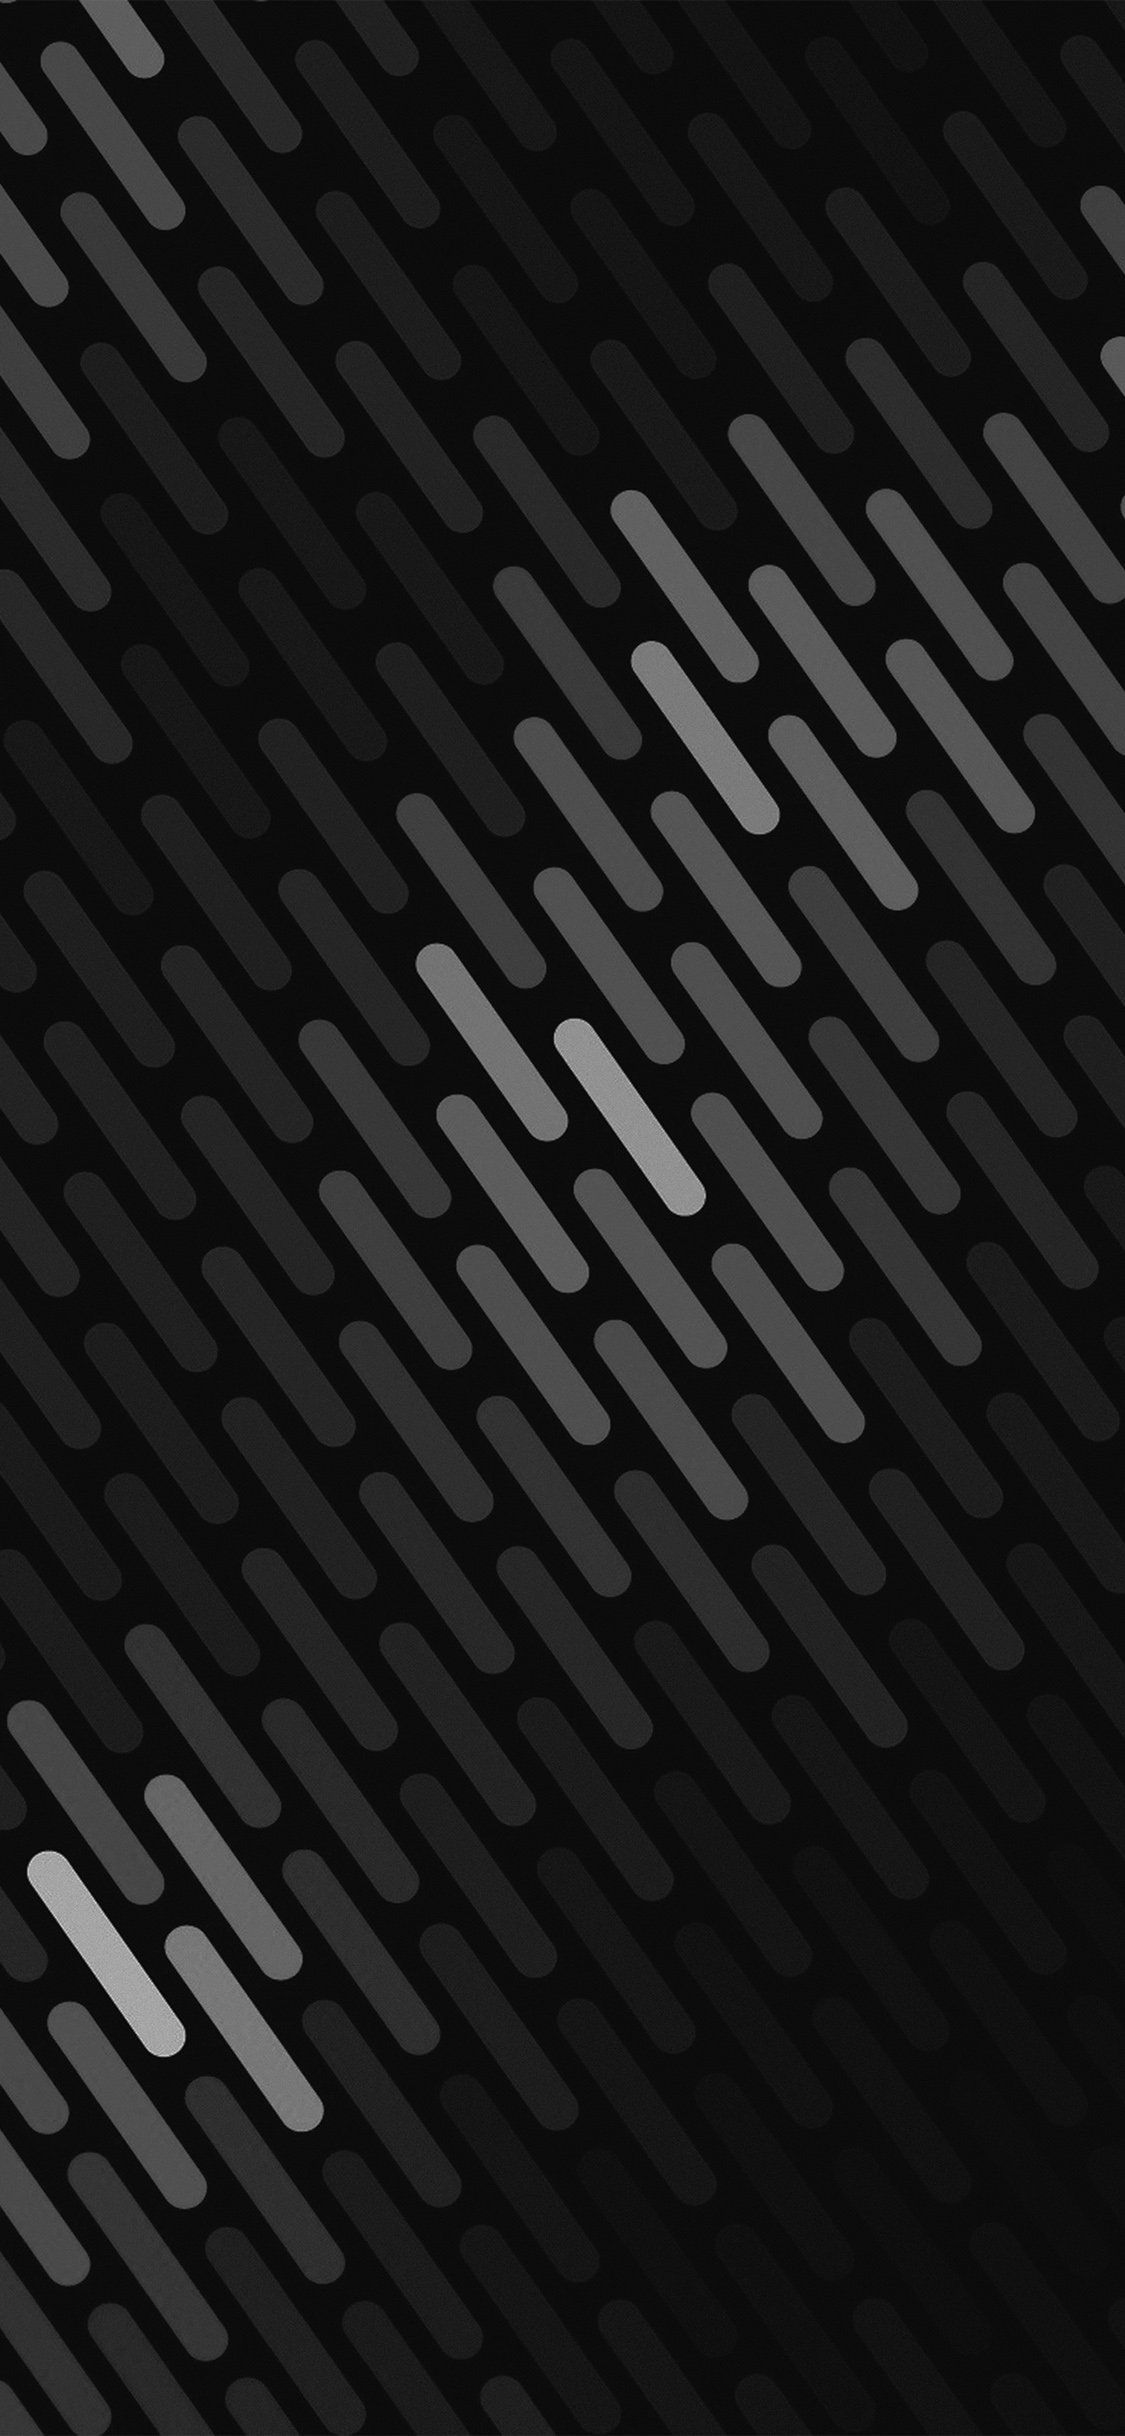 AMOLED Abstract Wallpaper 141 AMOLED Wallpapers Black